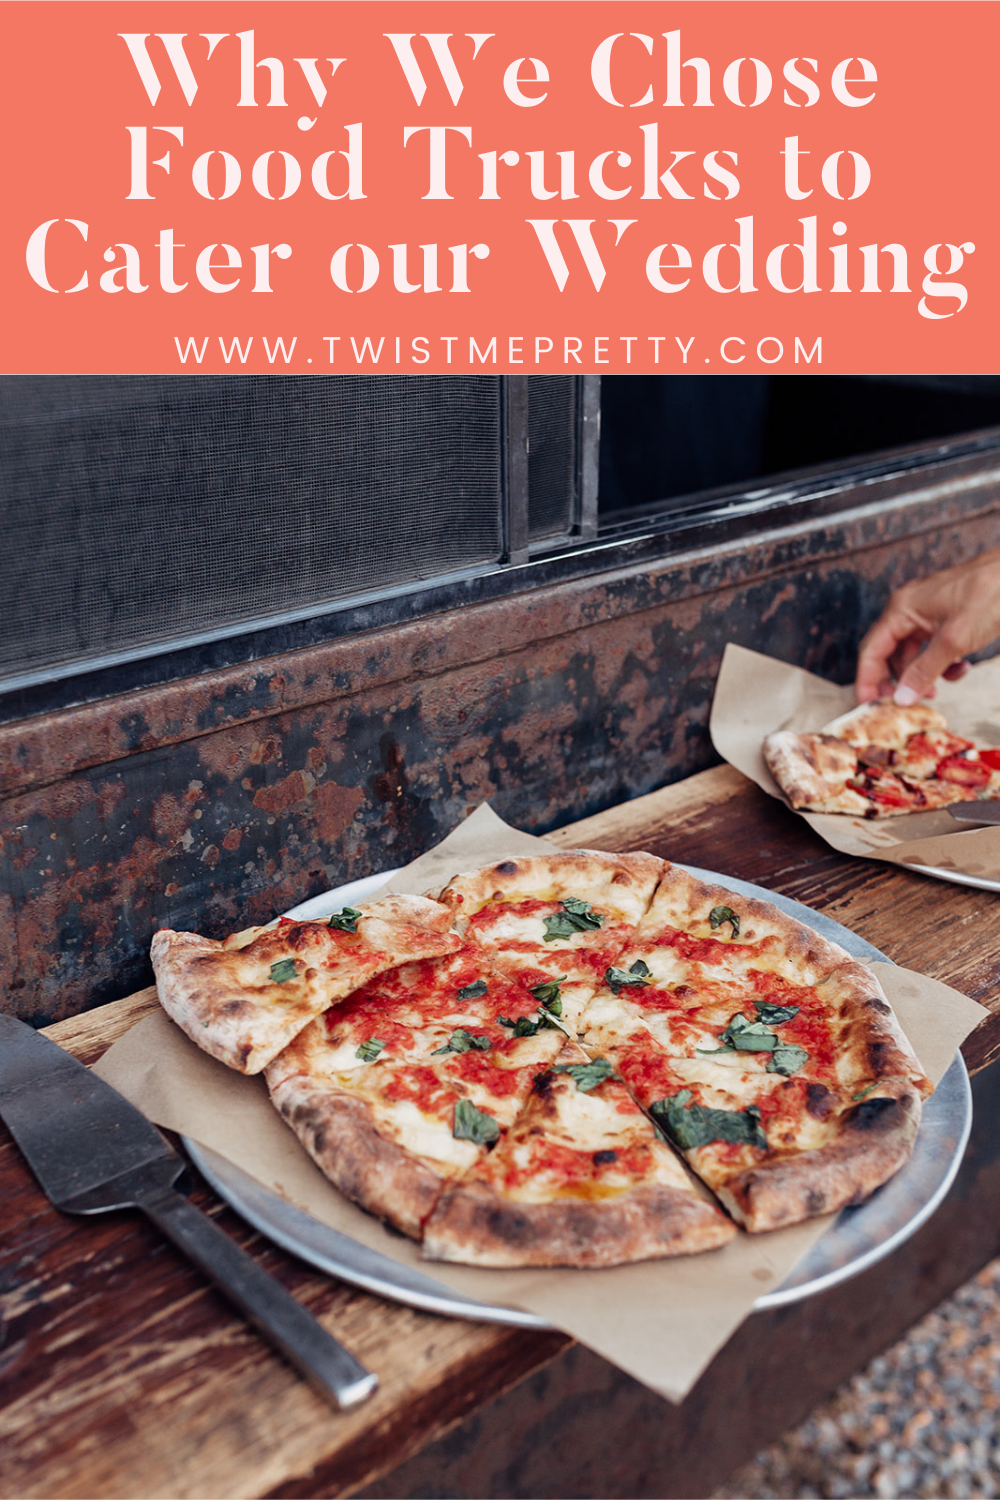 Why we chose food trucks to cater our wedding. www.twistmepretty.com